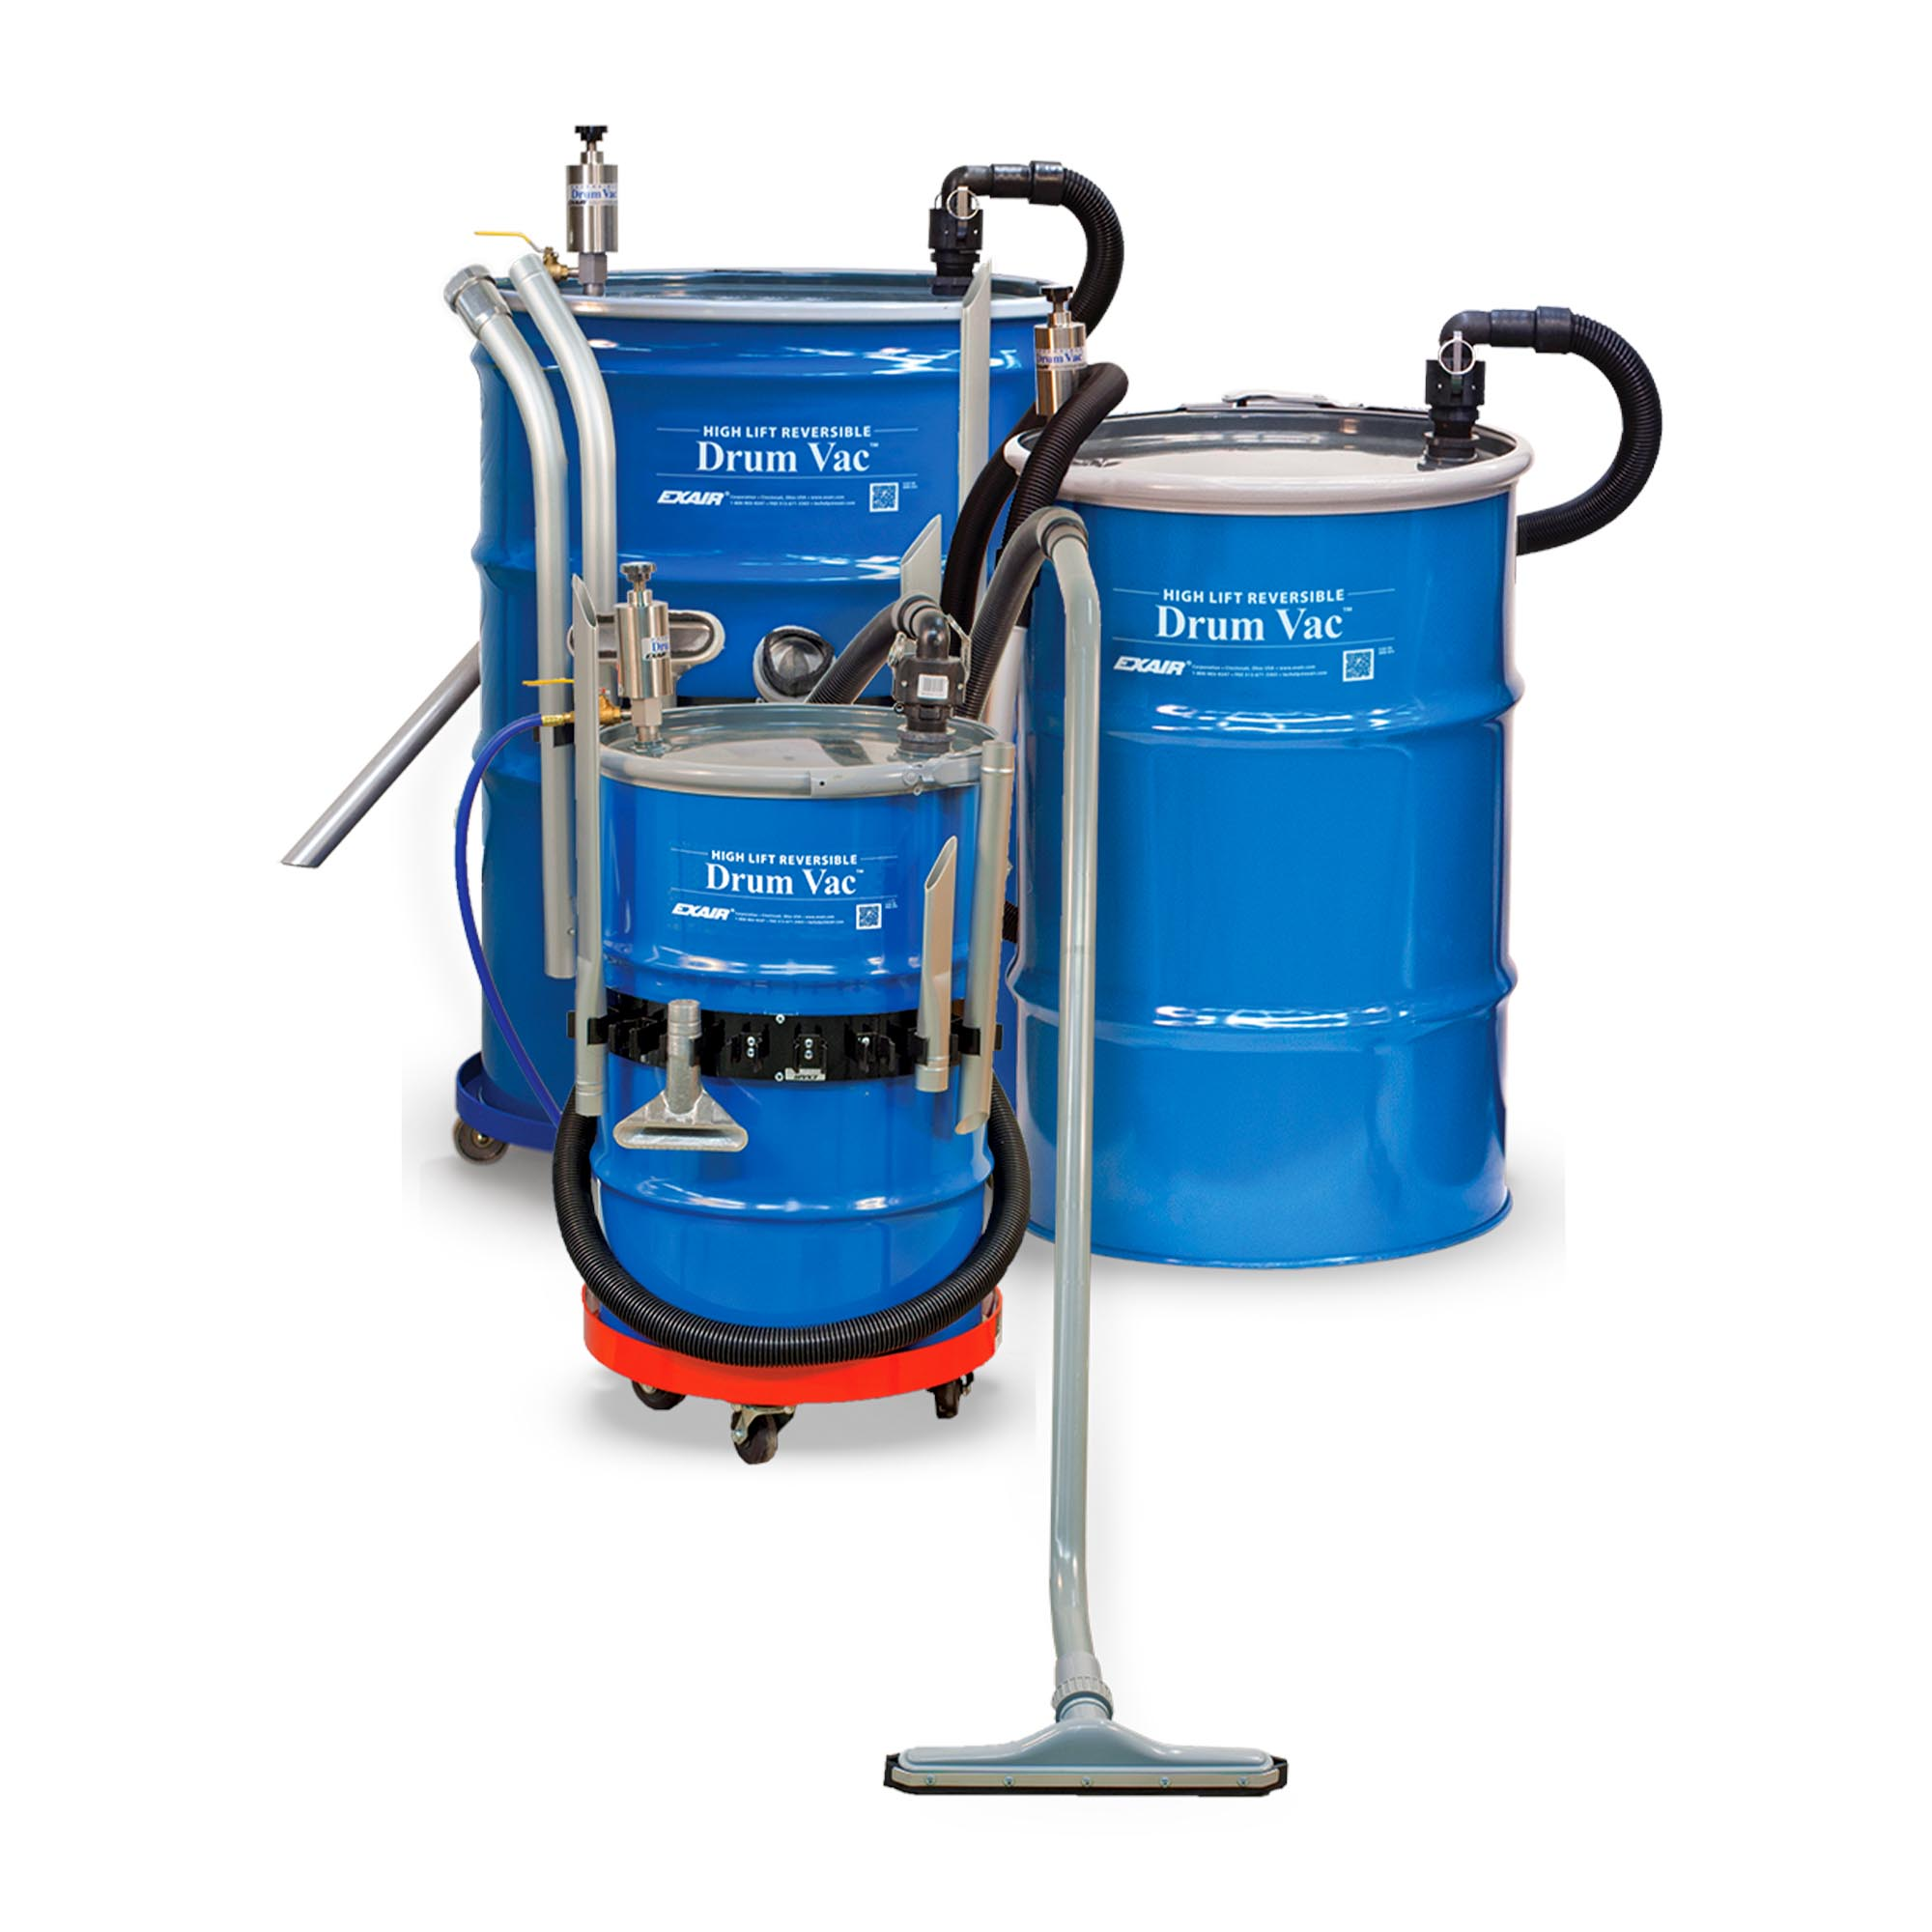 The High Lift Reversible Drum Vac is available in 30, 55 and 110 Gallon models.